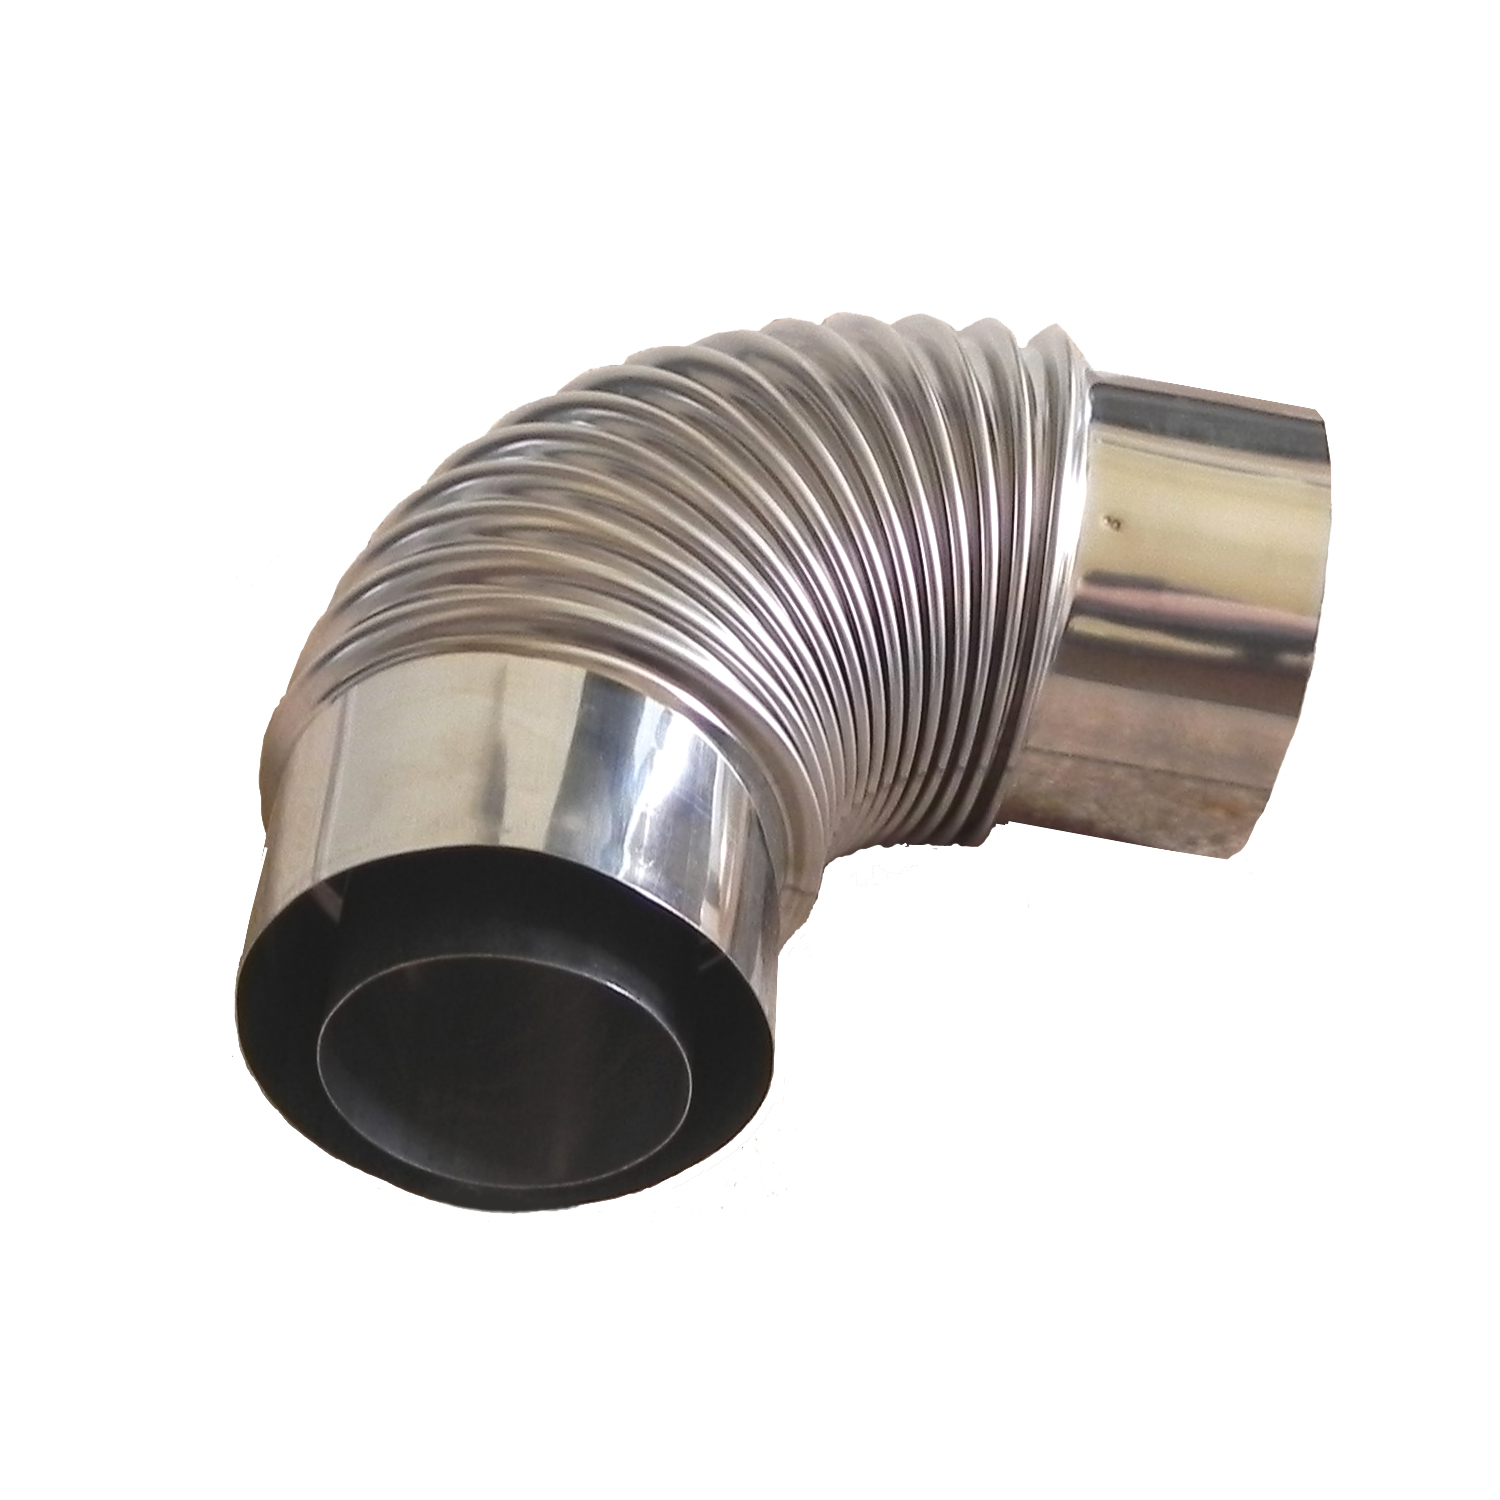 90 coaxial stainless steel direct vent pipe elbow